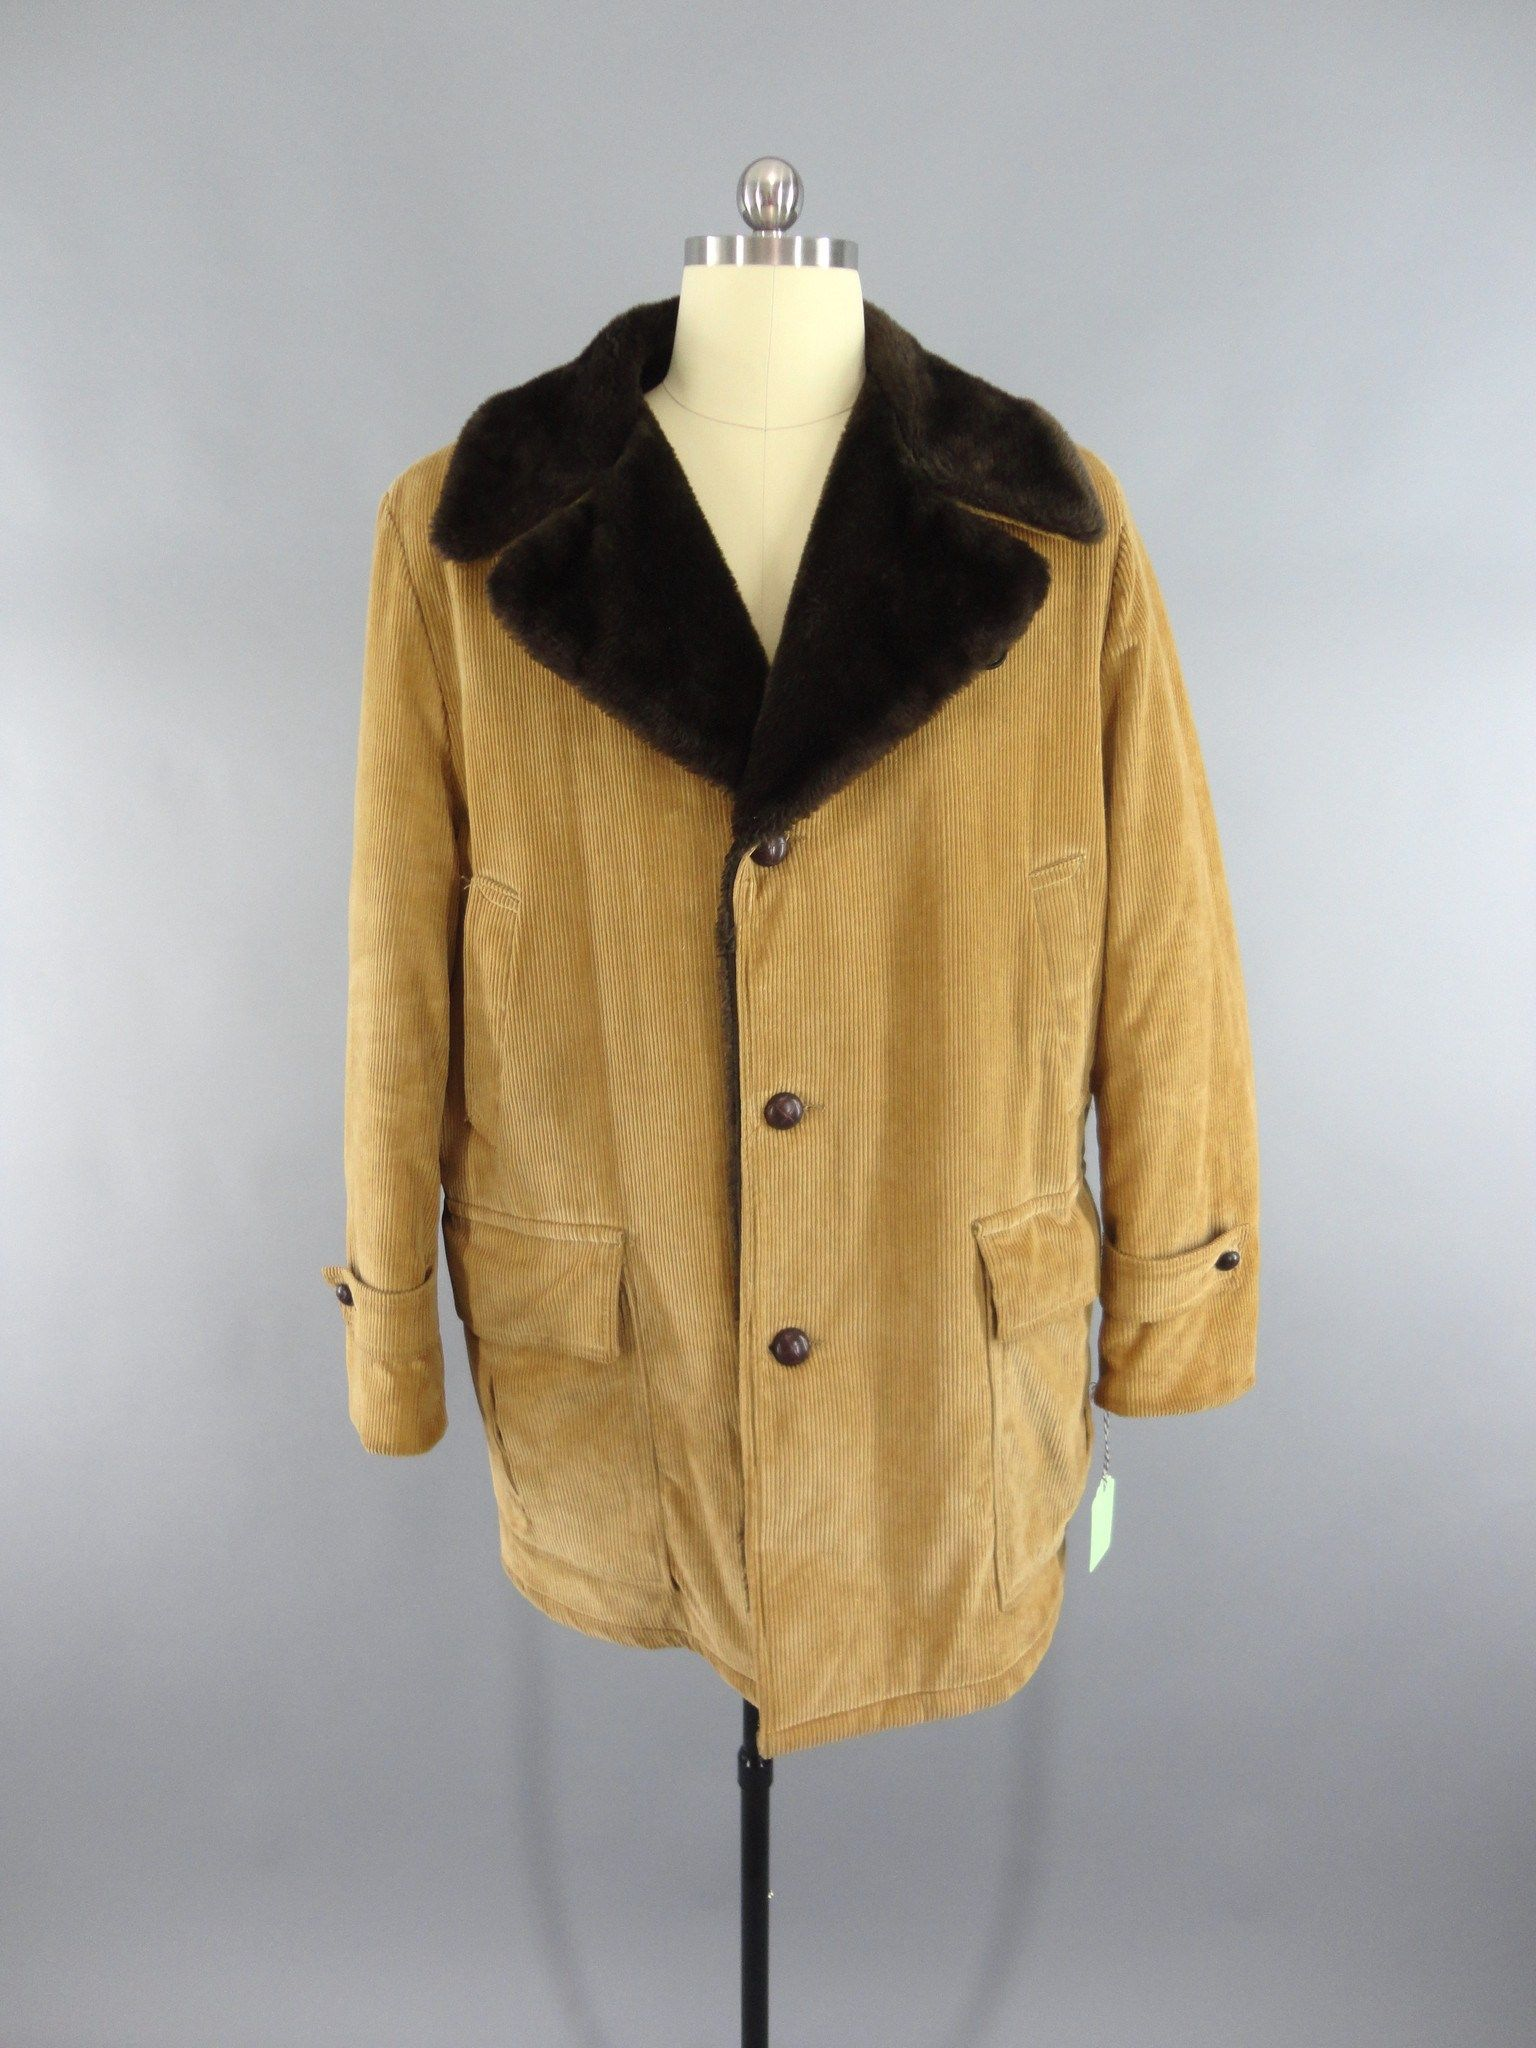 Vintage 1970s Coat Tan Corduroy Jacket House Of Peerless